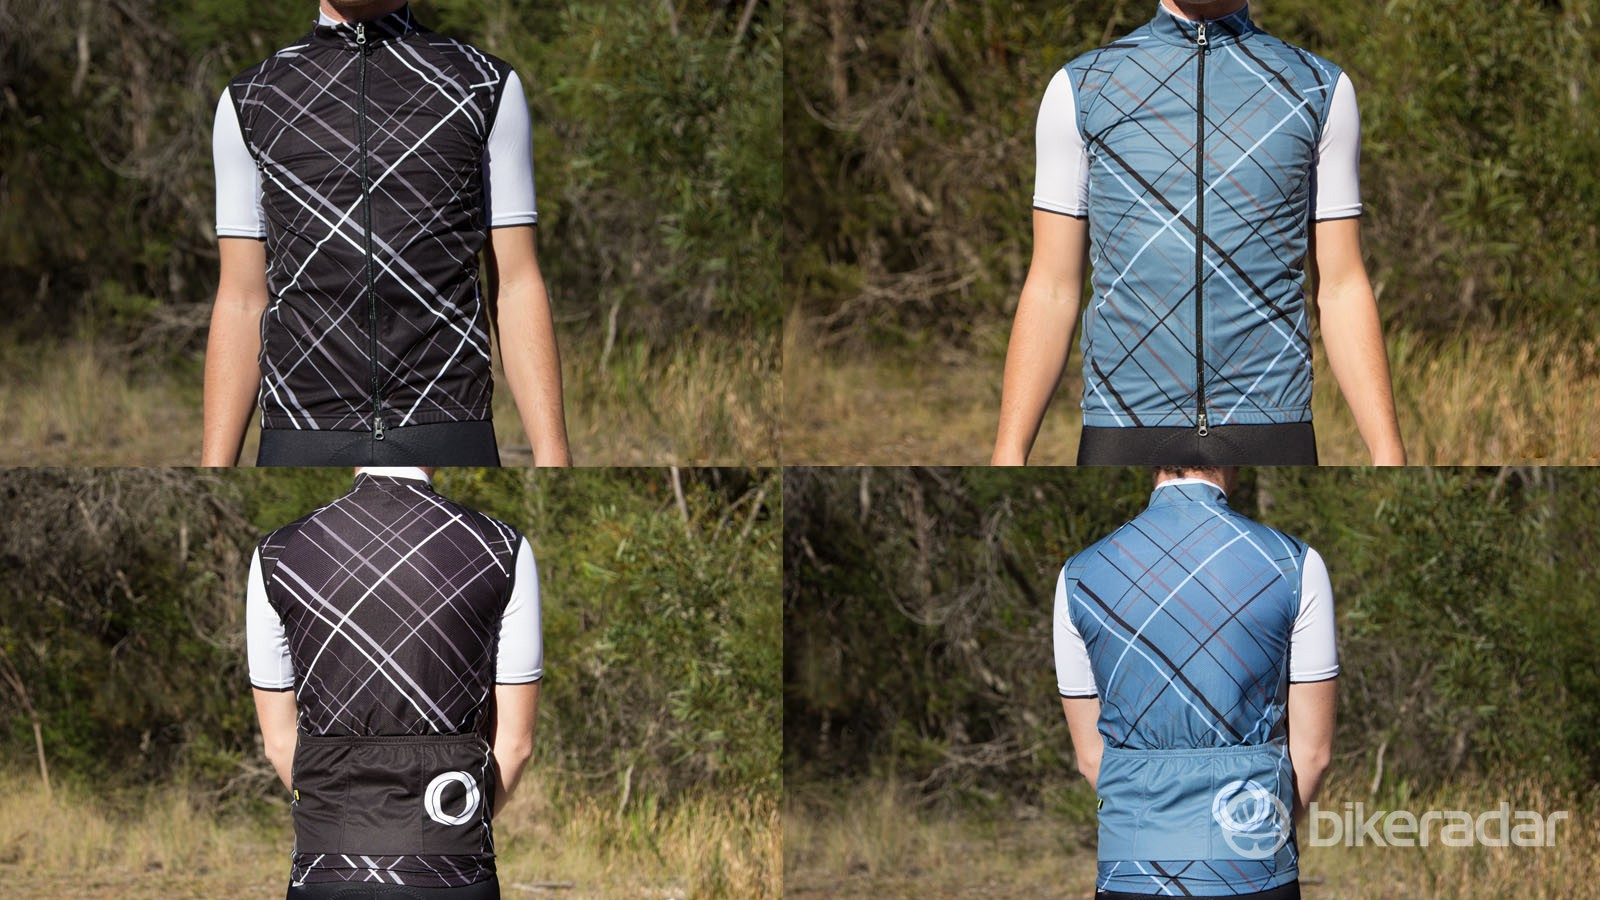 The Wind Cheater gilet got a makeover, but retains the same features